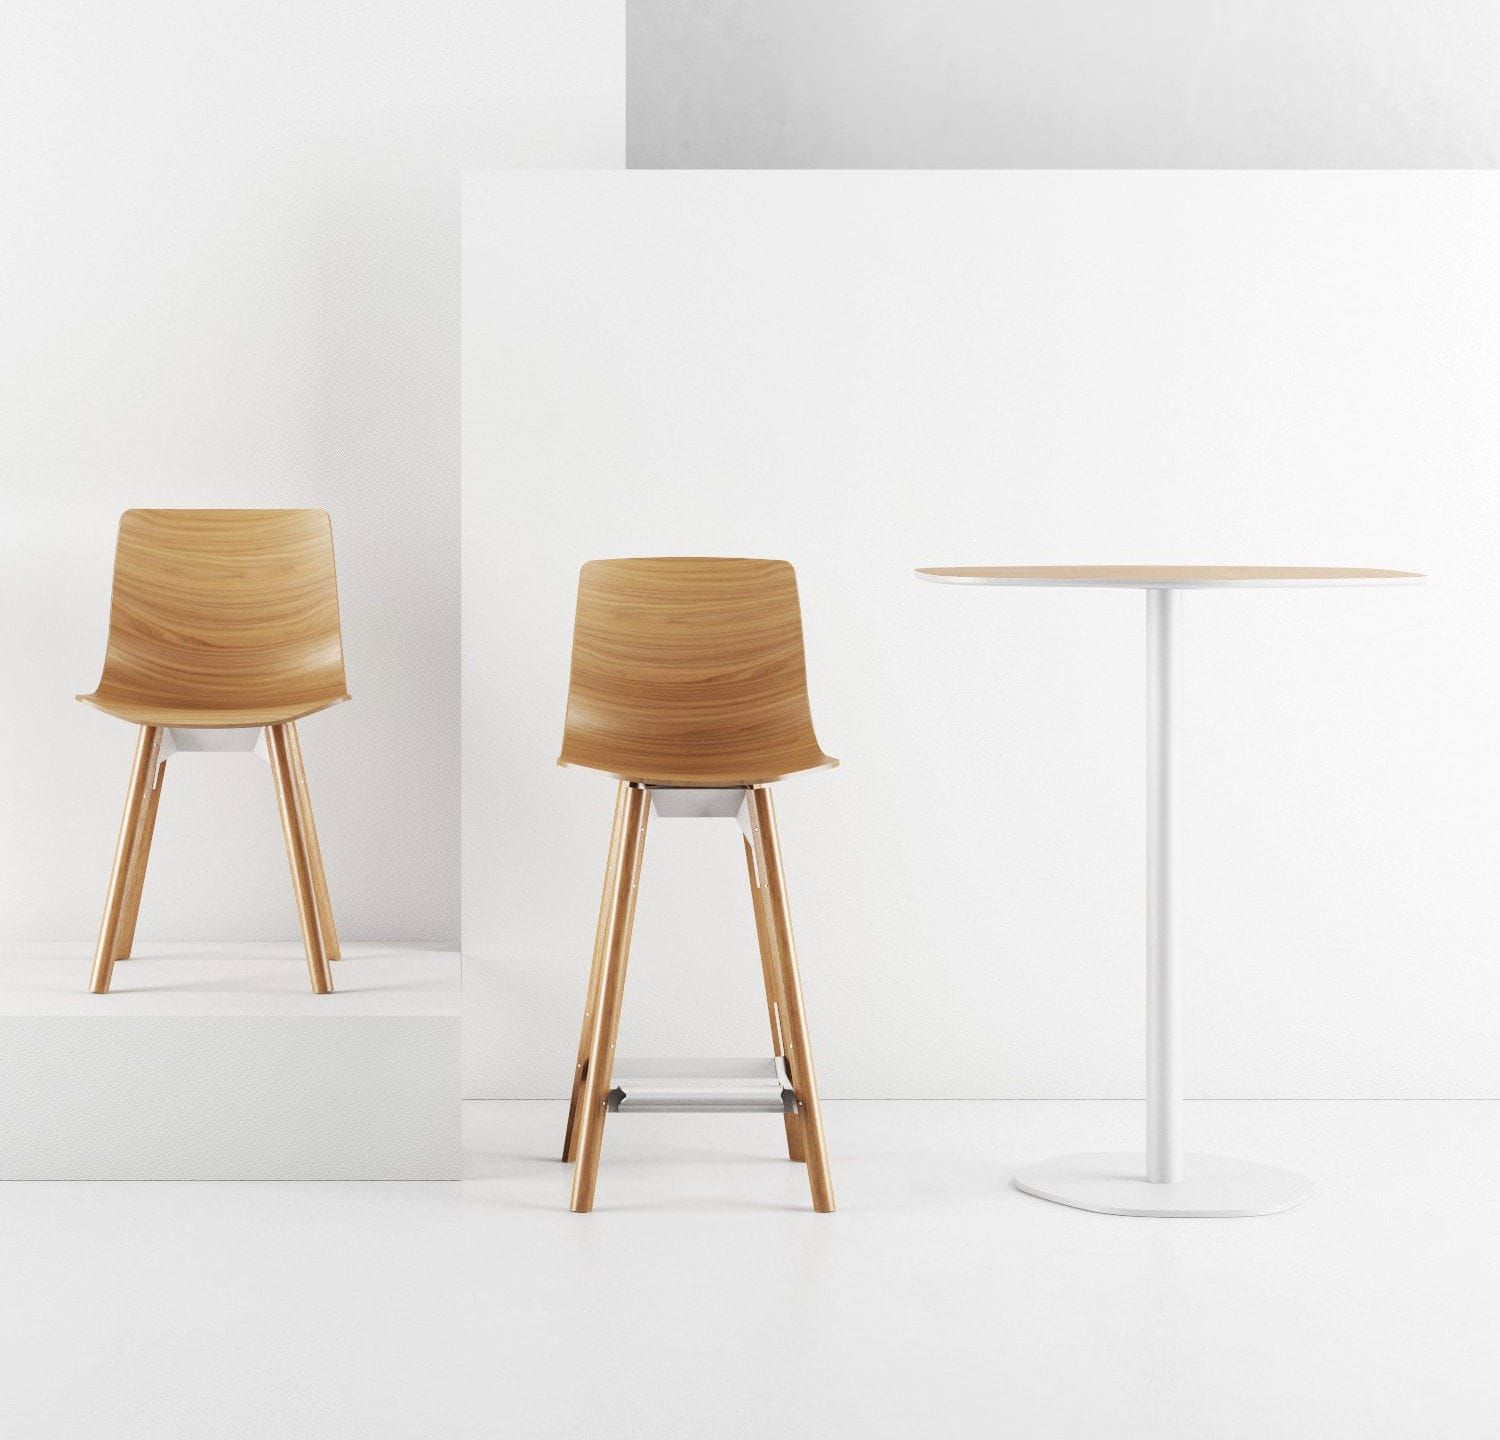 muji office chair. Contemporary Bar Chair / Oak Molded Plywood Walnut - LOKU By Shin Azumi Muji Office